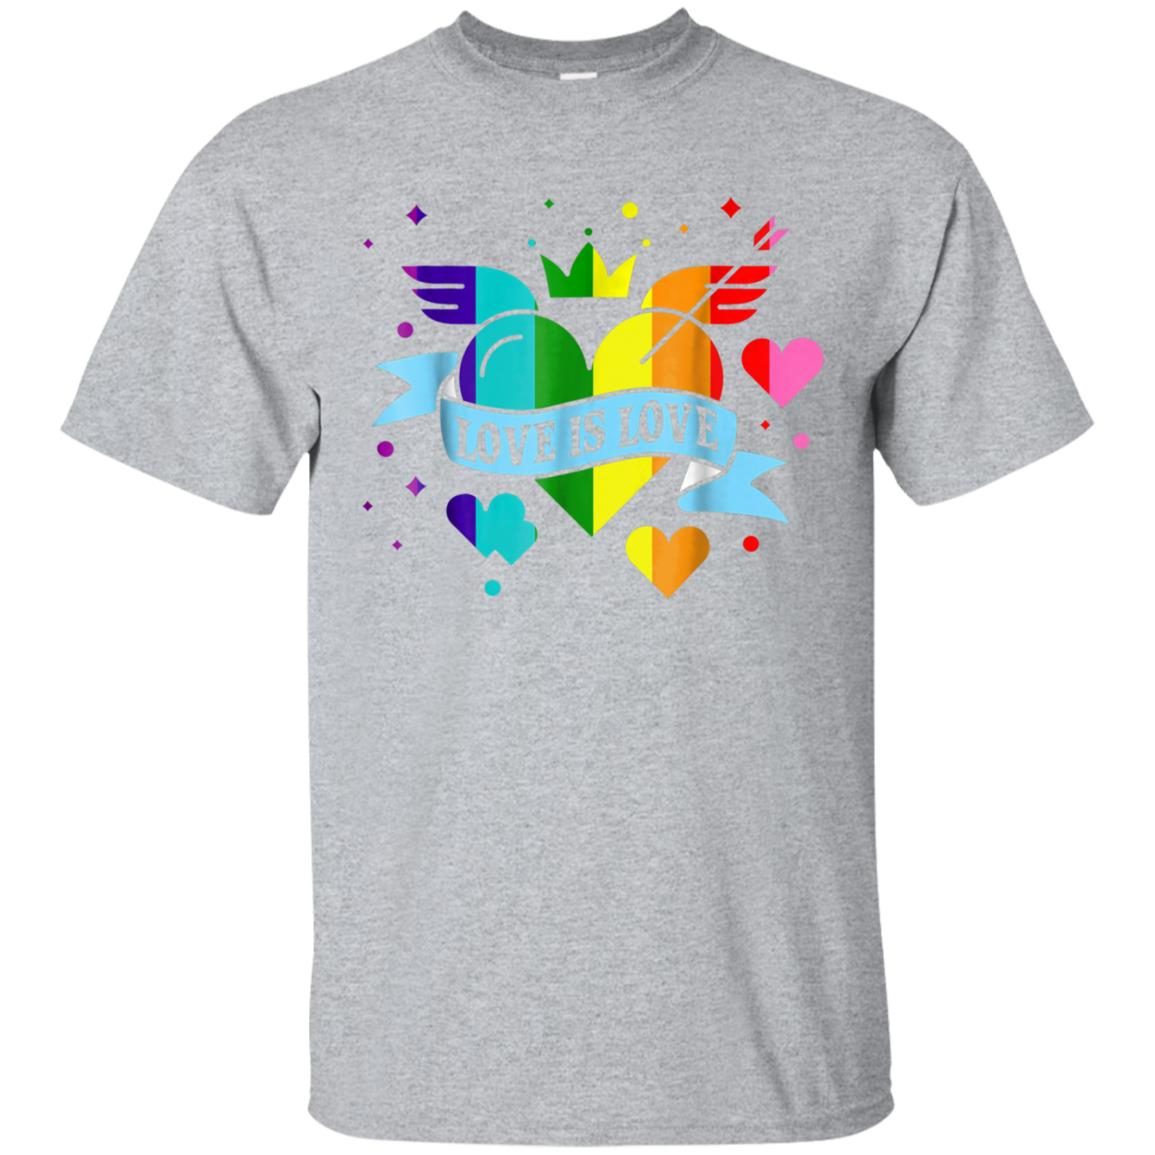 love is love tshirt - gay pride 99promocode